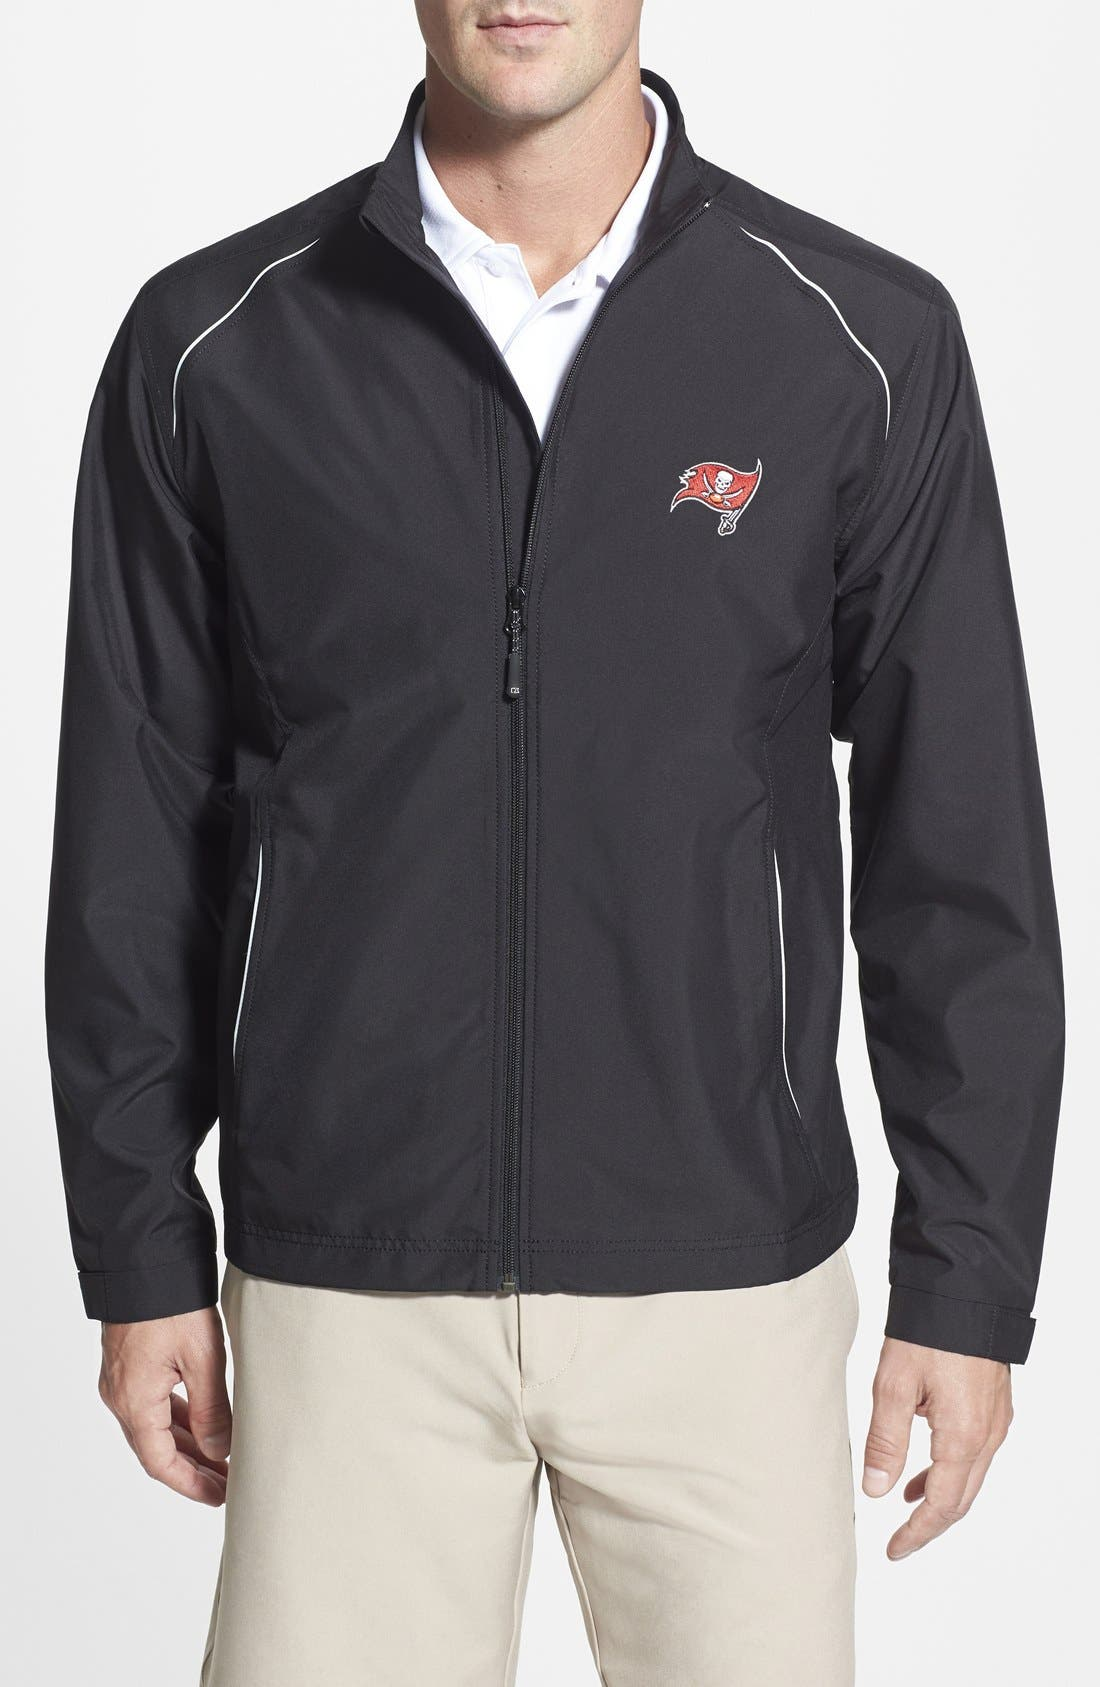 Tampa Bay Buccaneers - Beacon WeatherTec Wind & Water Resistant Jacket,                             Main thumbnail 1, color,                             001